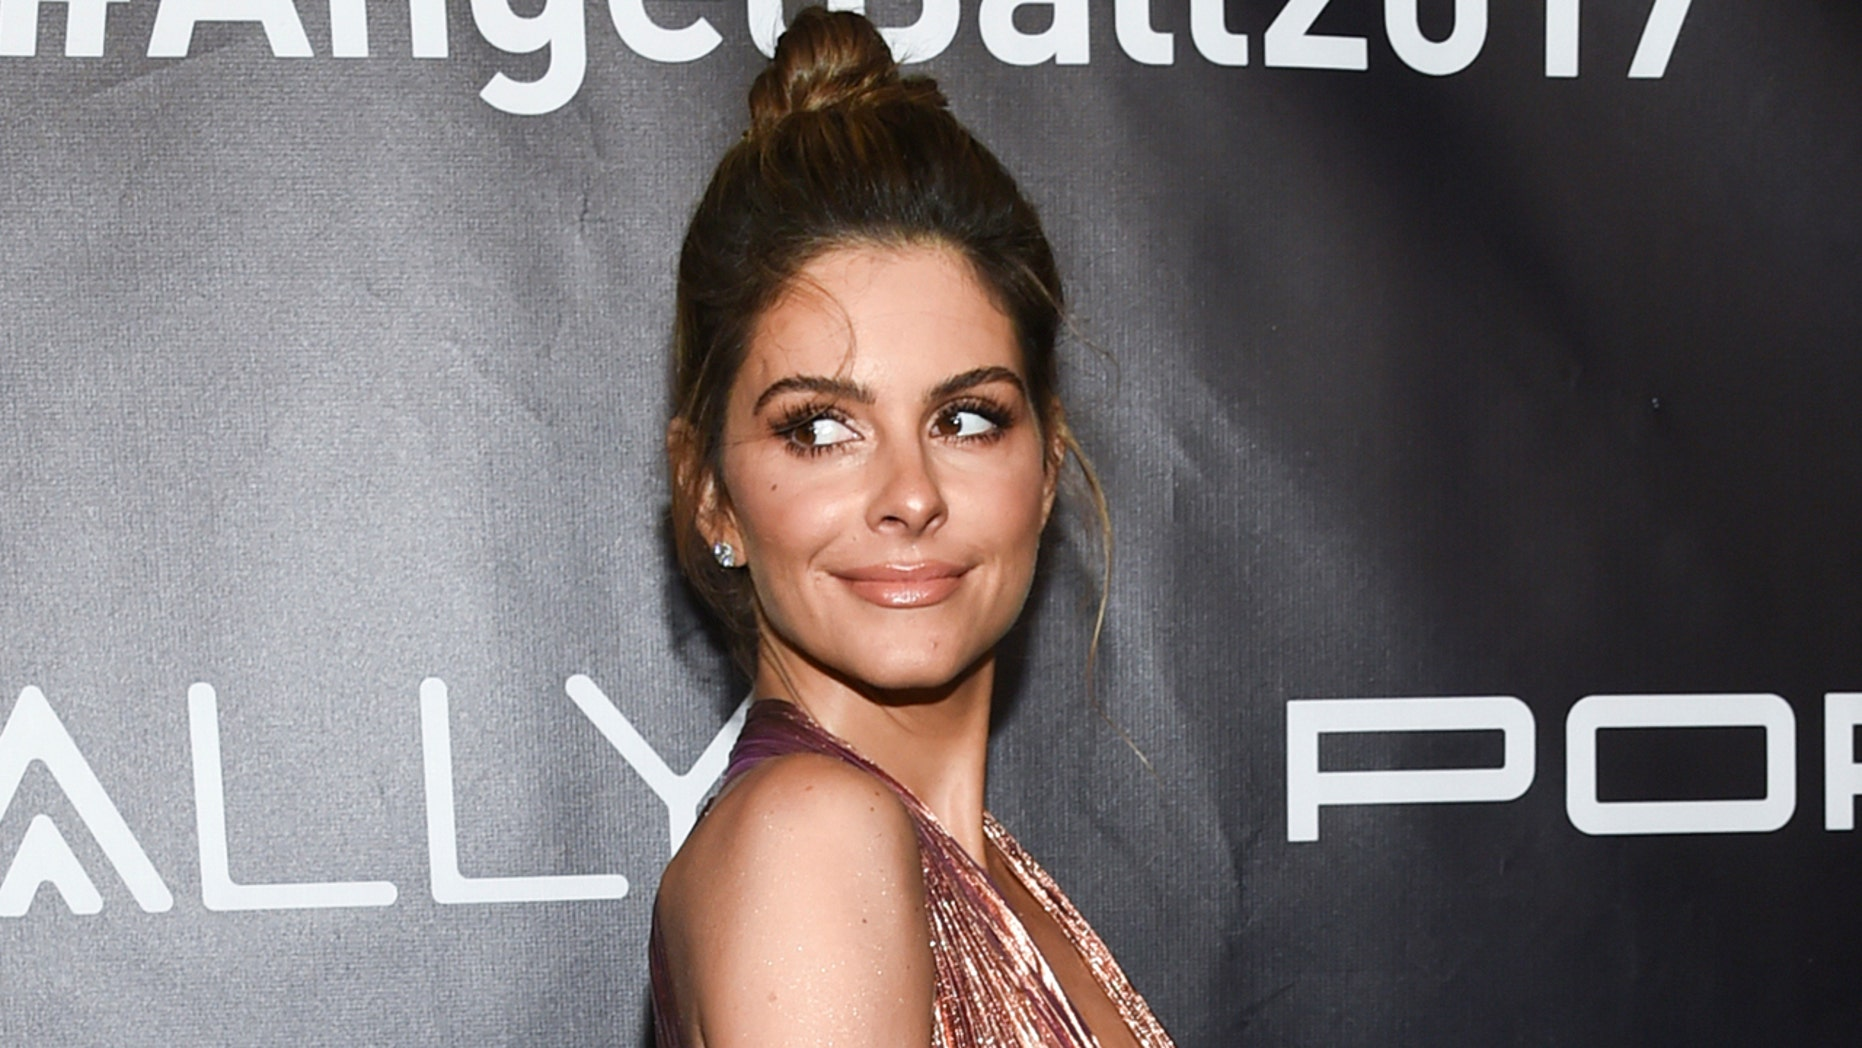 FILE - In this Oct. 23, 2017 file photo, Maria Menounos attends the Angel Ball in New York. Menounos believes in equal pay for equal work, but feels the situation with her former E! News colleague Catt Sadler is a bit more complicated. Sadler left the network late last year after learning that her on-air partner Jason Kennedy made nearly twice as much money as she did. She said she had to take a stand. While sympathetic, Menounos said simply paying everyone the same isn't always feasible. She cited NBA superstar LeBron James, who earns much more than many of his teammates. (Photo by Evan Agostini/Invision/AP, File)